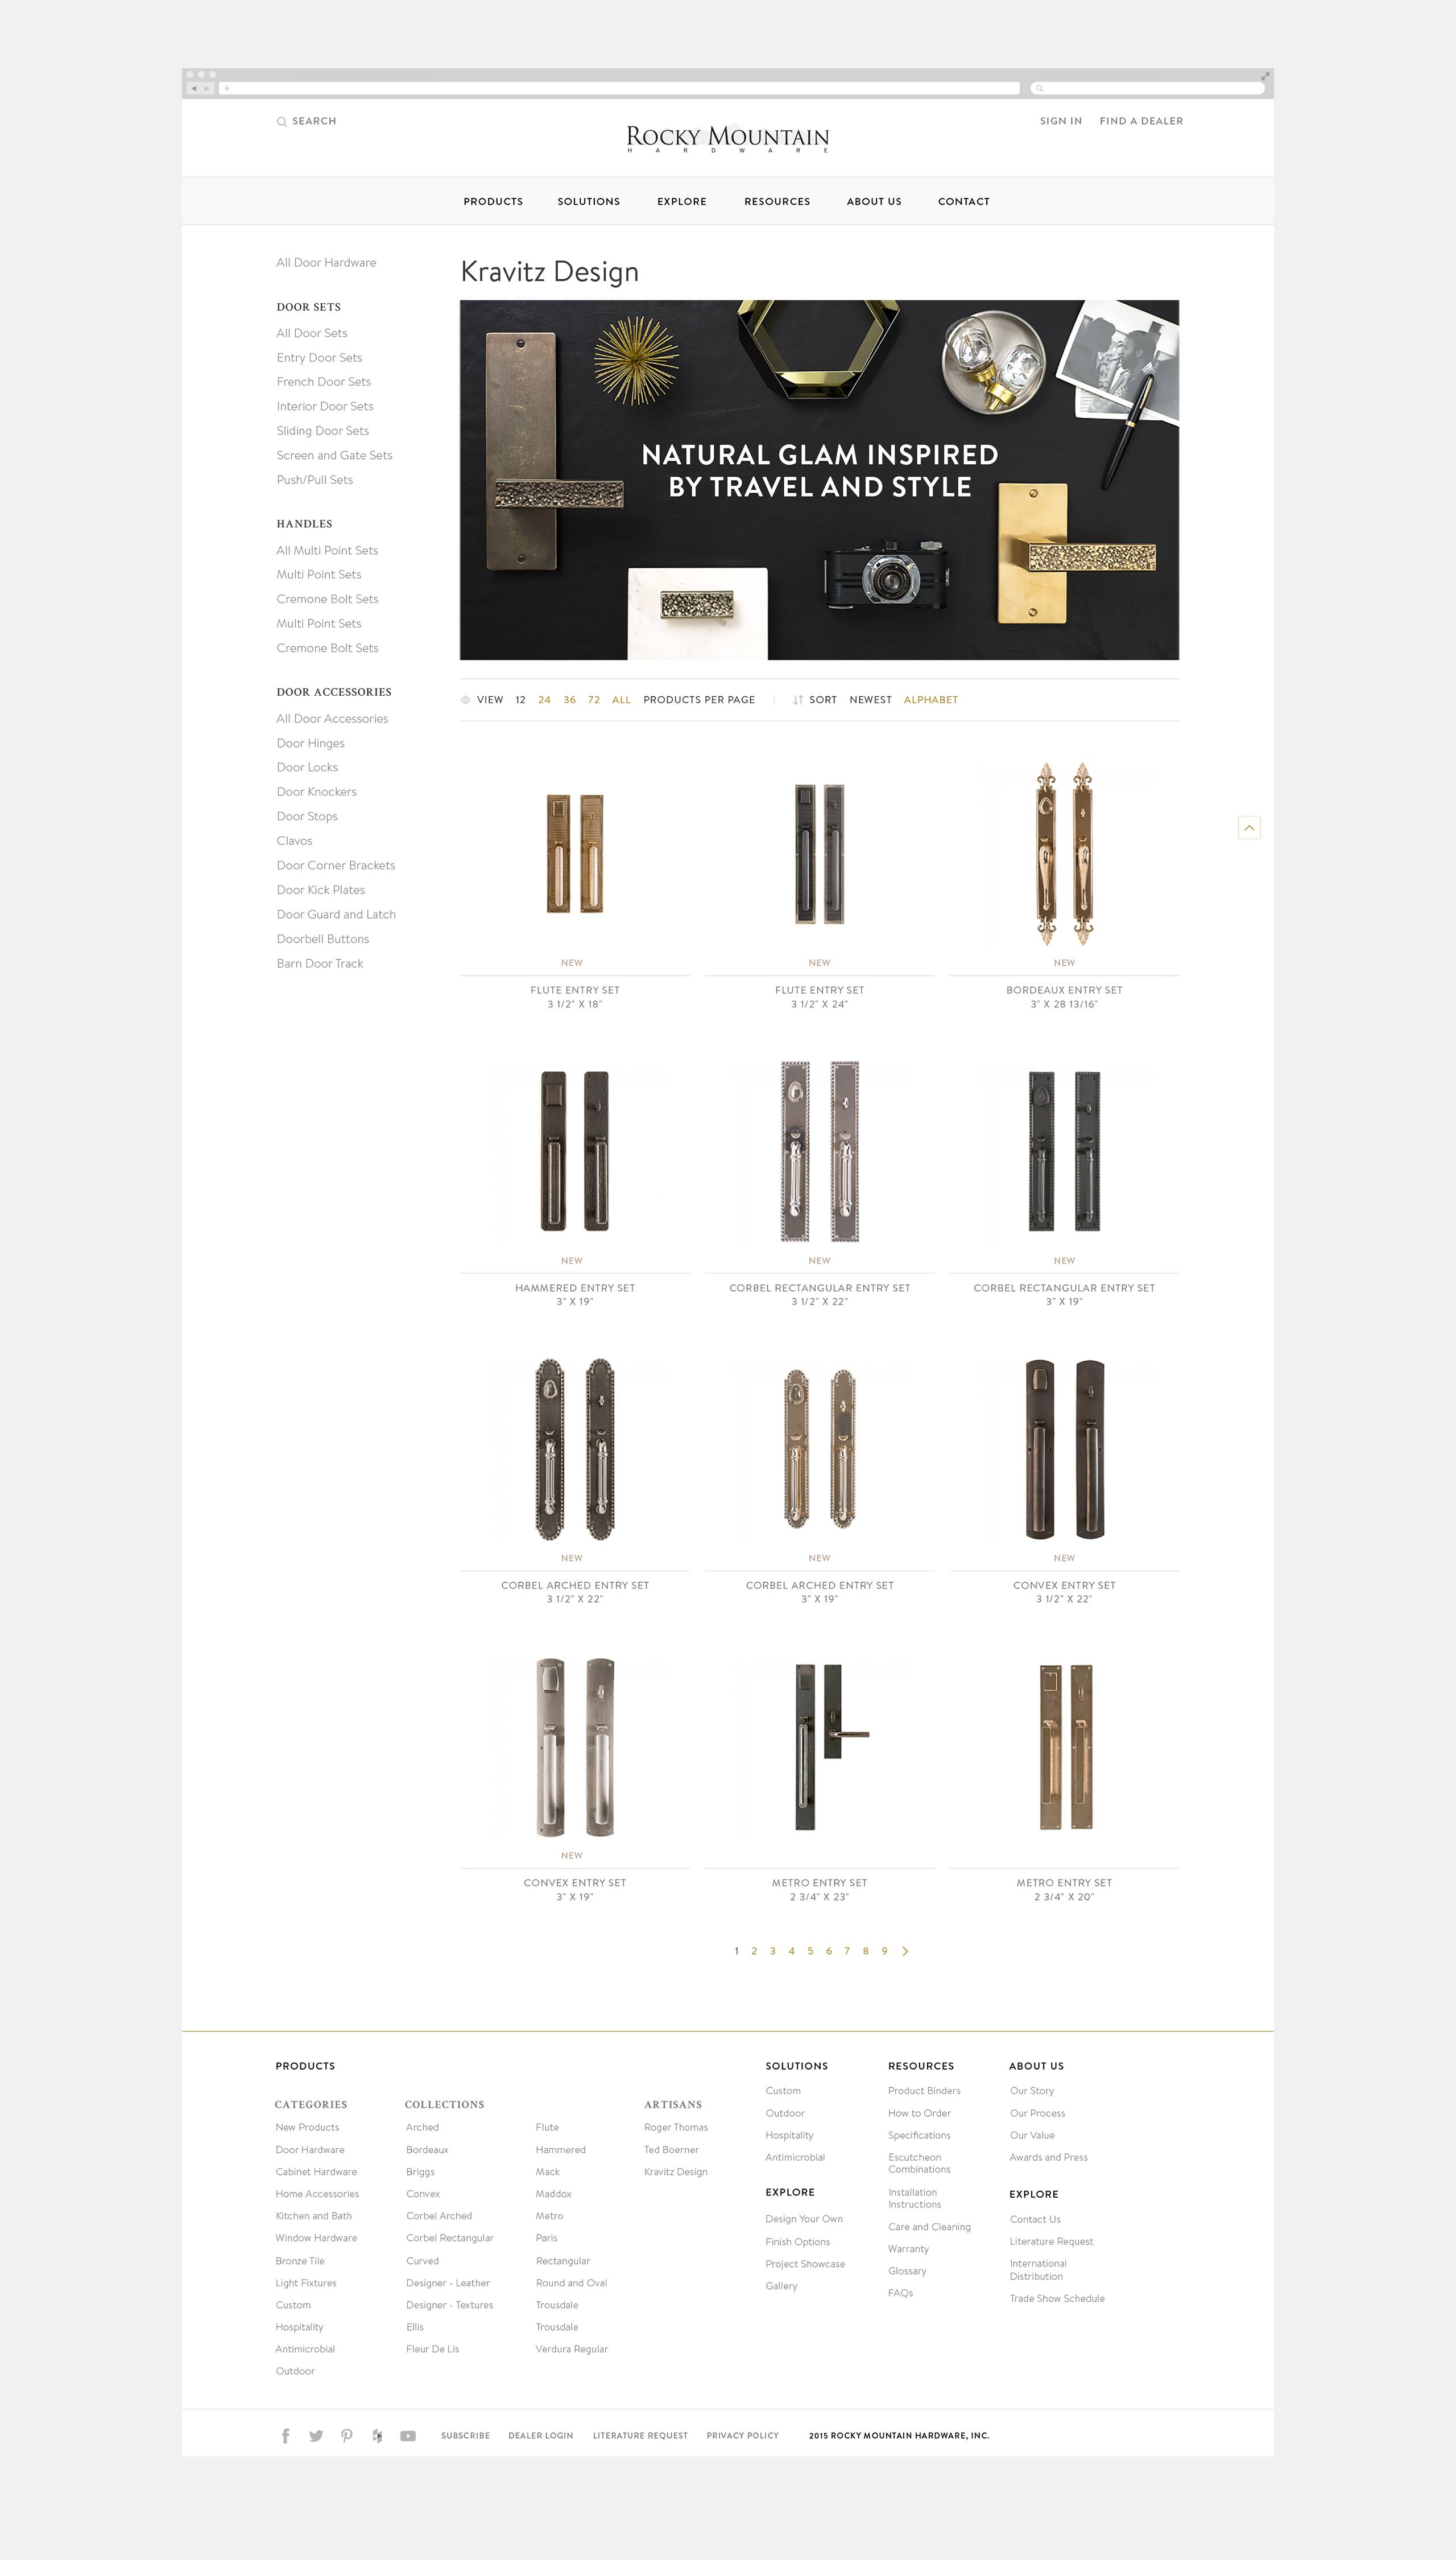 Rocky Mountain Hardware Interactive Website - Lenny Kravitz Product Collections